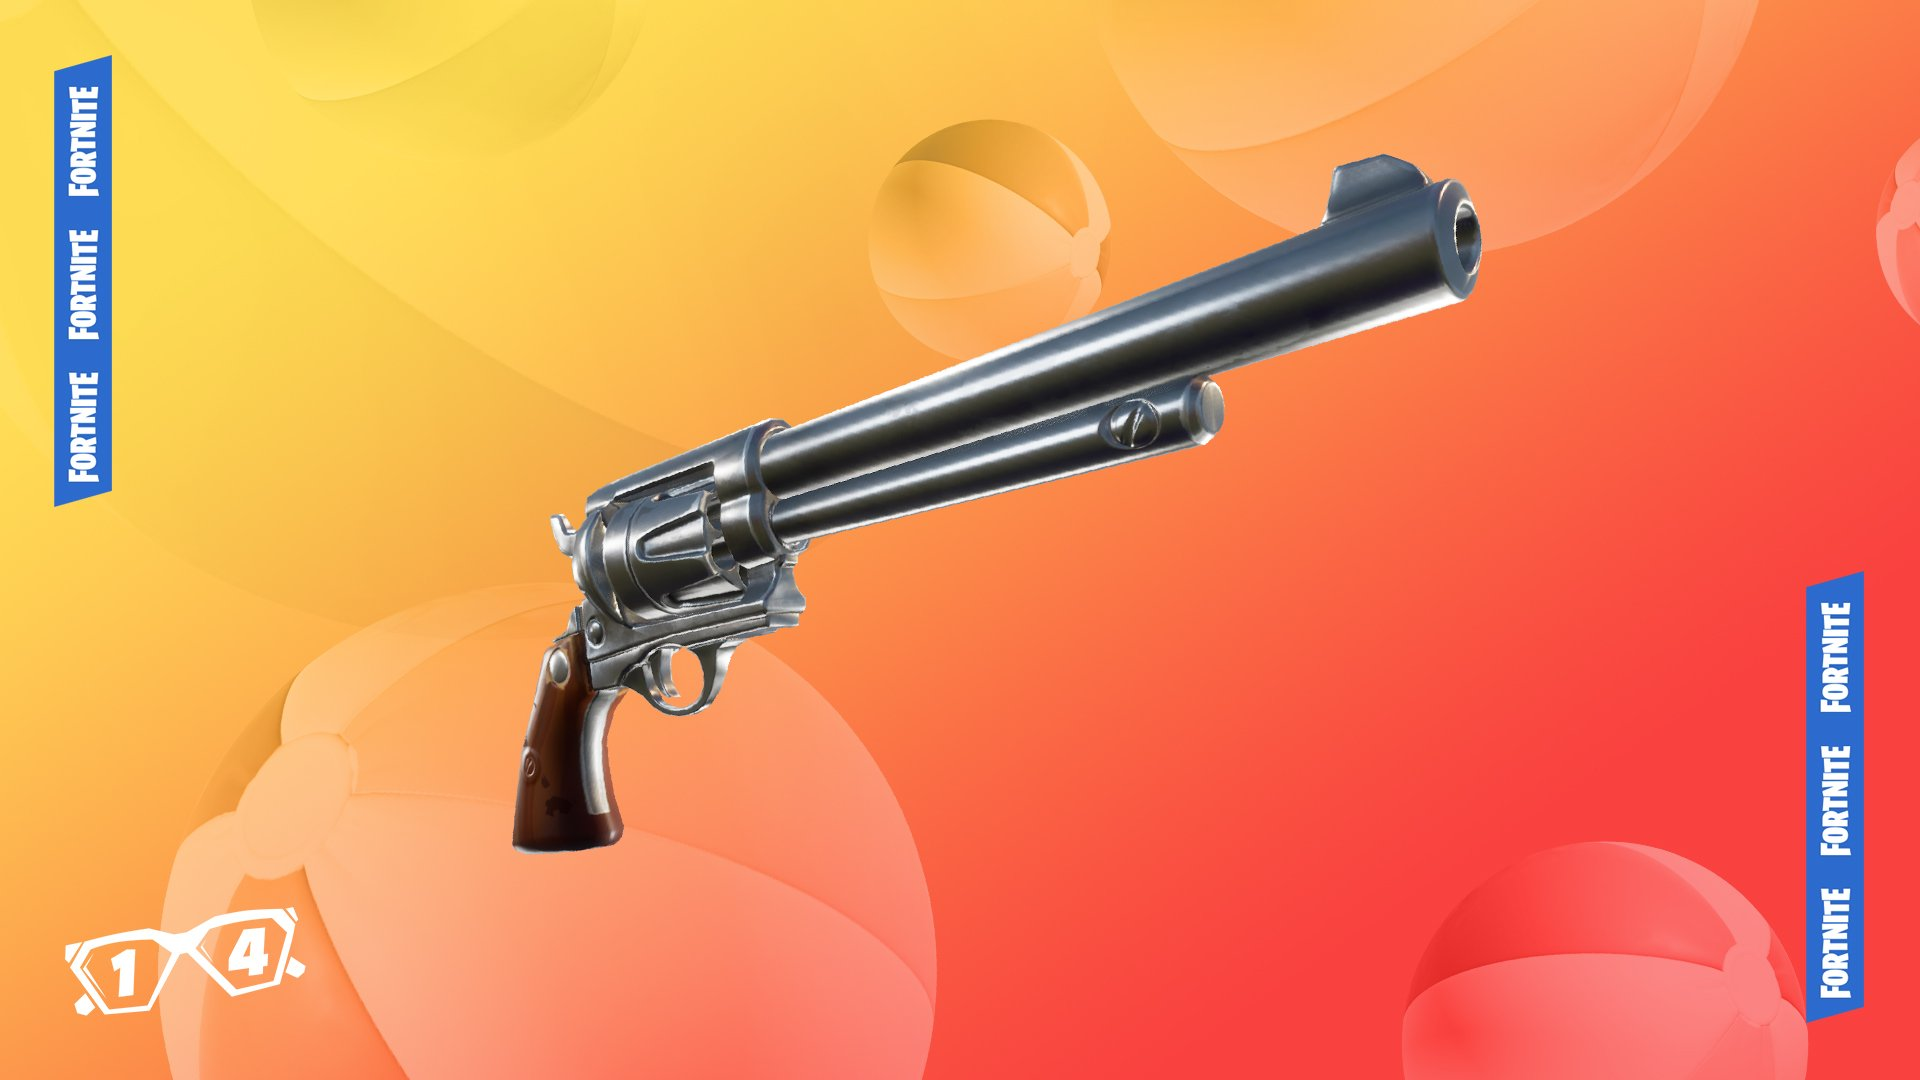 Fortnite 14 Days of Summer Day 9 - Six Shooter Unvaulted